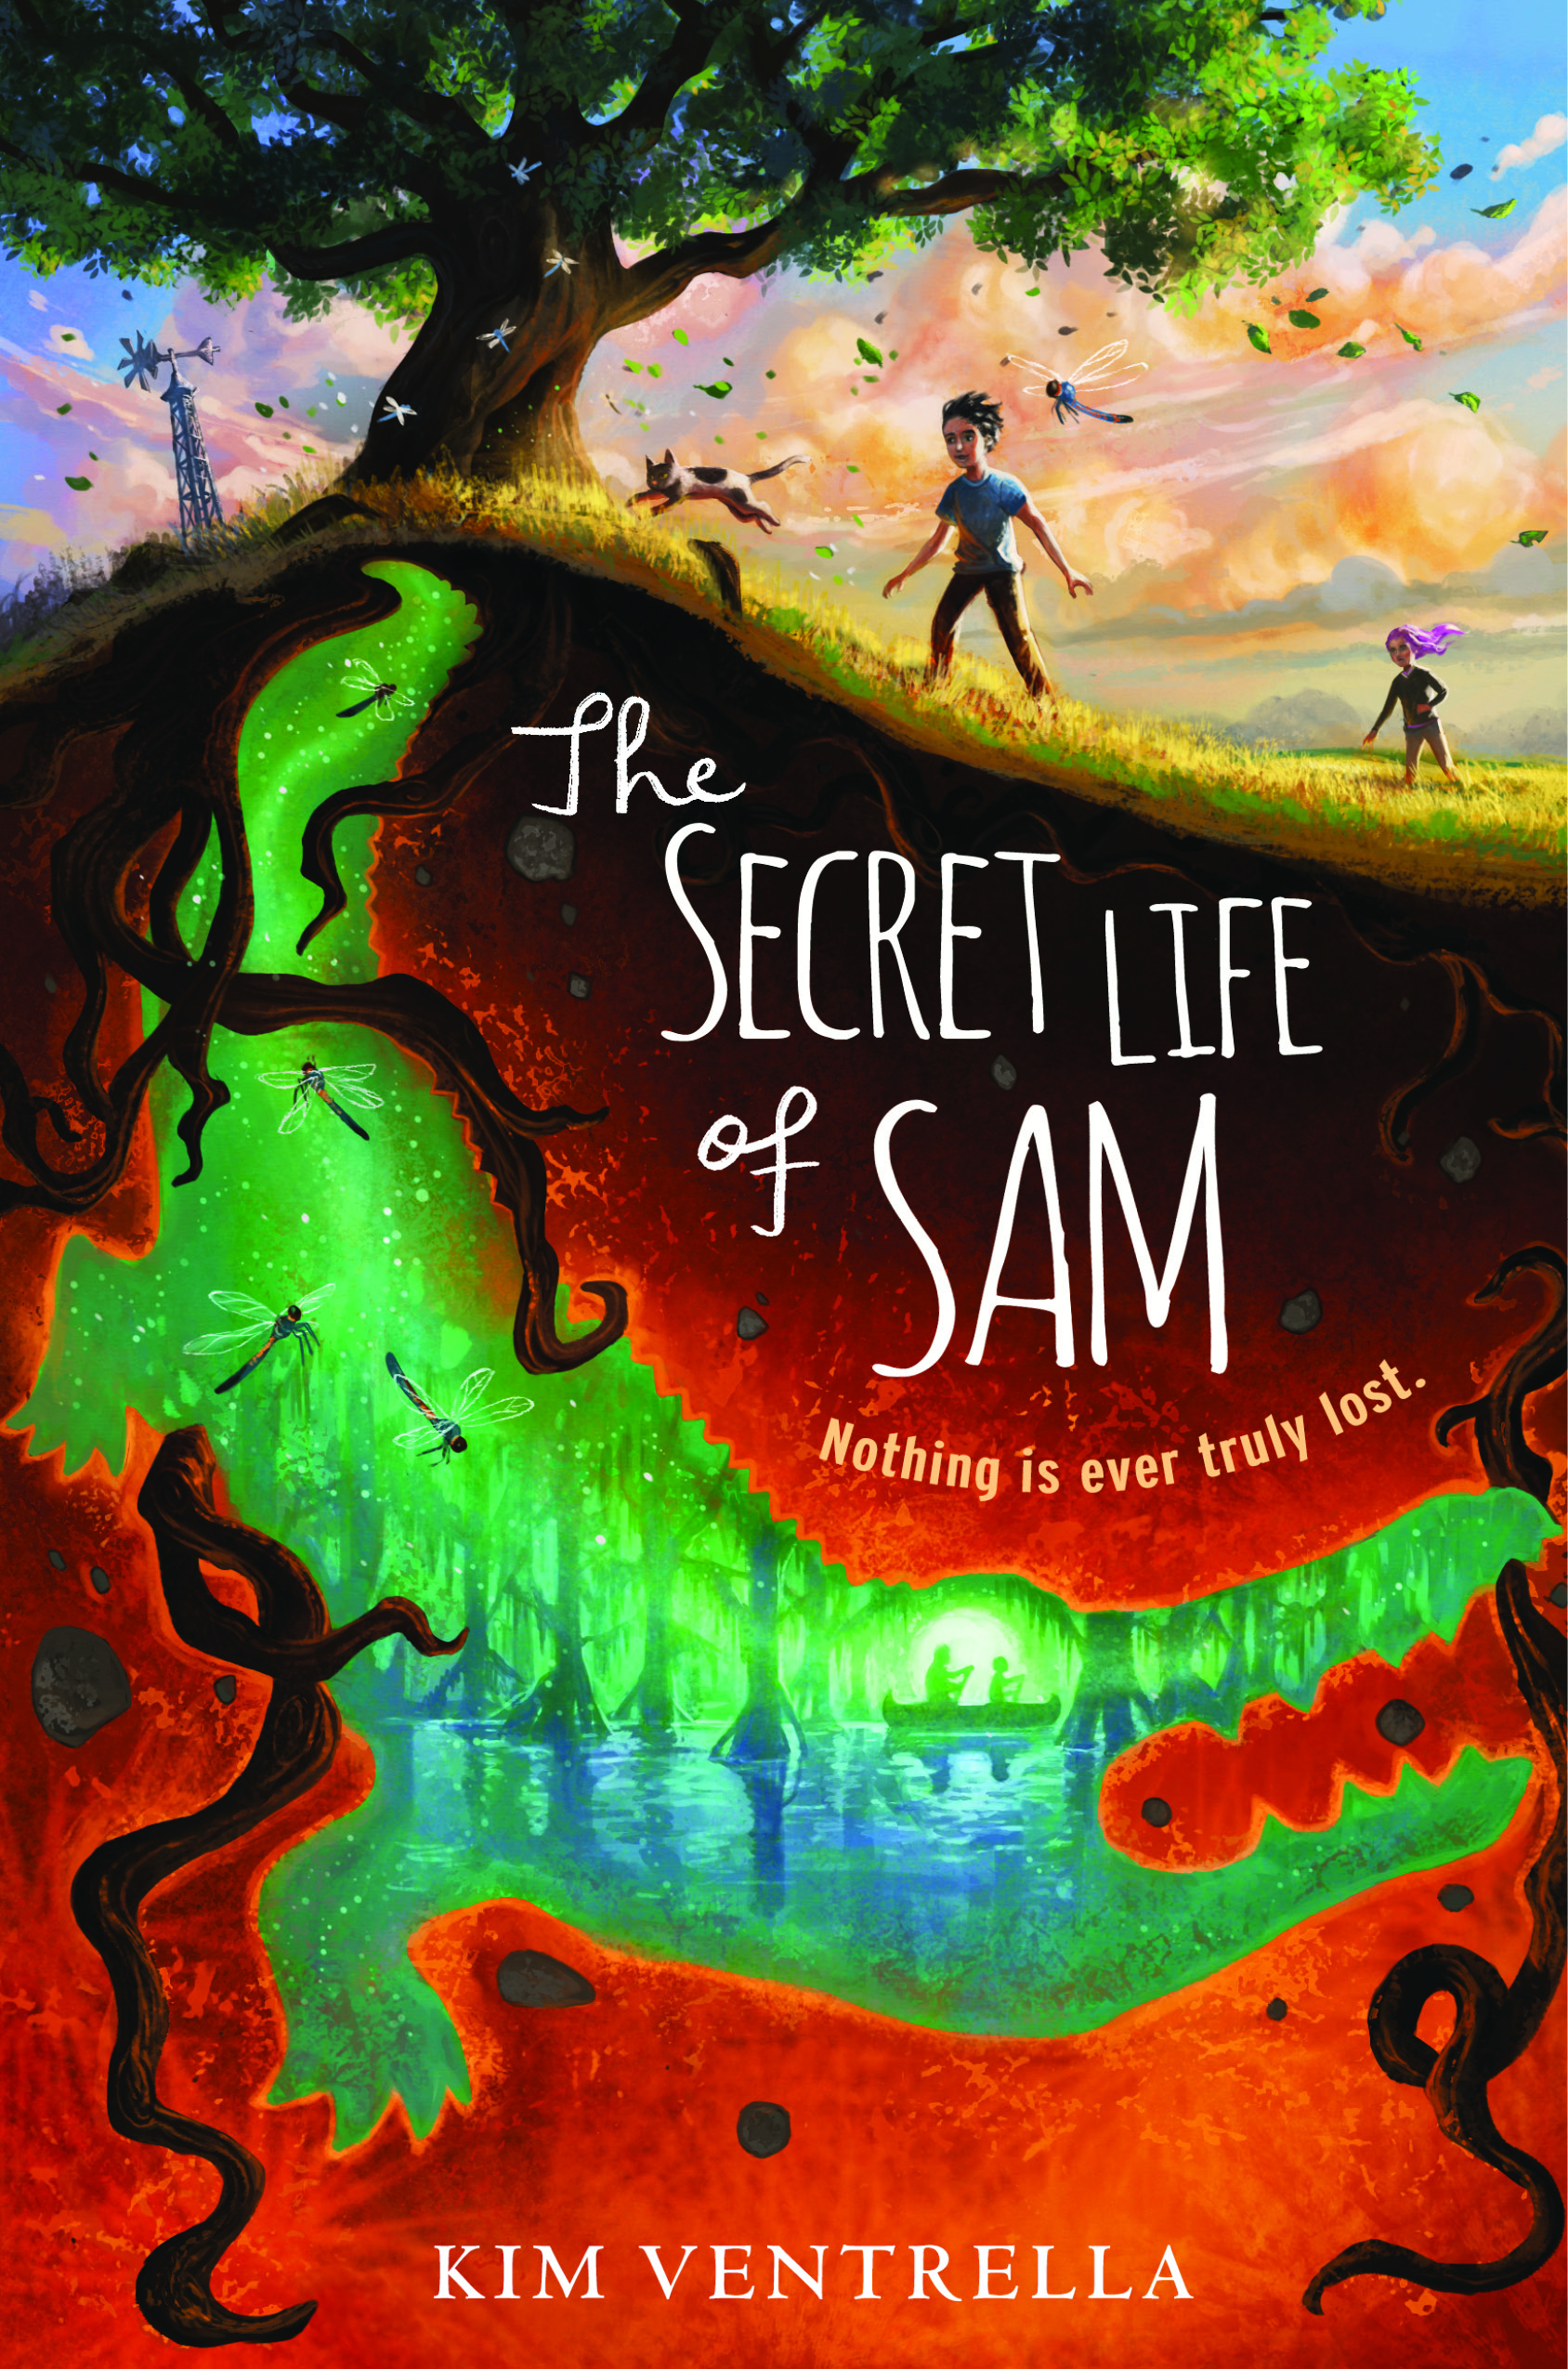 Interview with Kim Ventrella, Author of The Secret Life of Sam